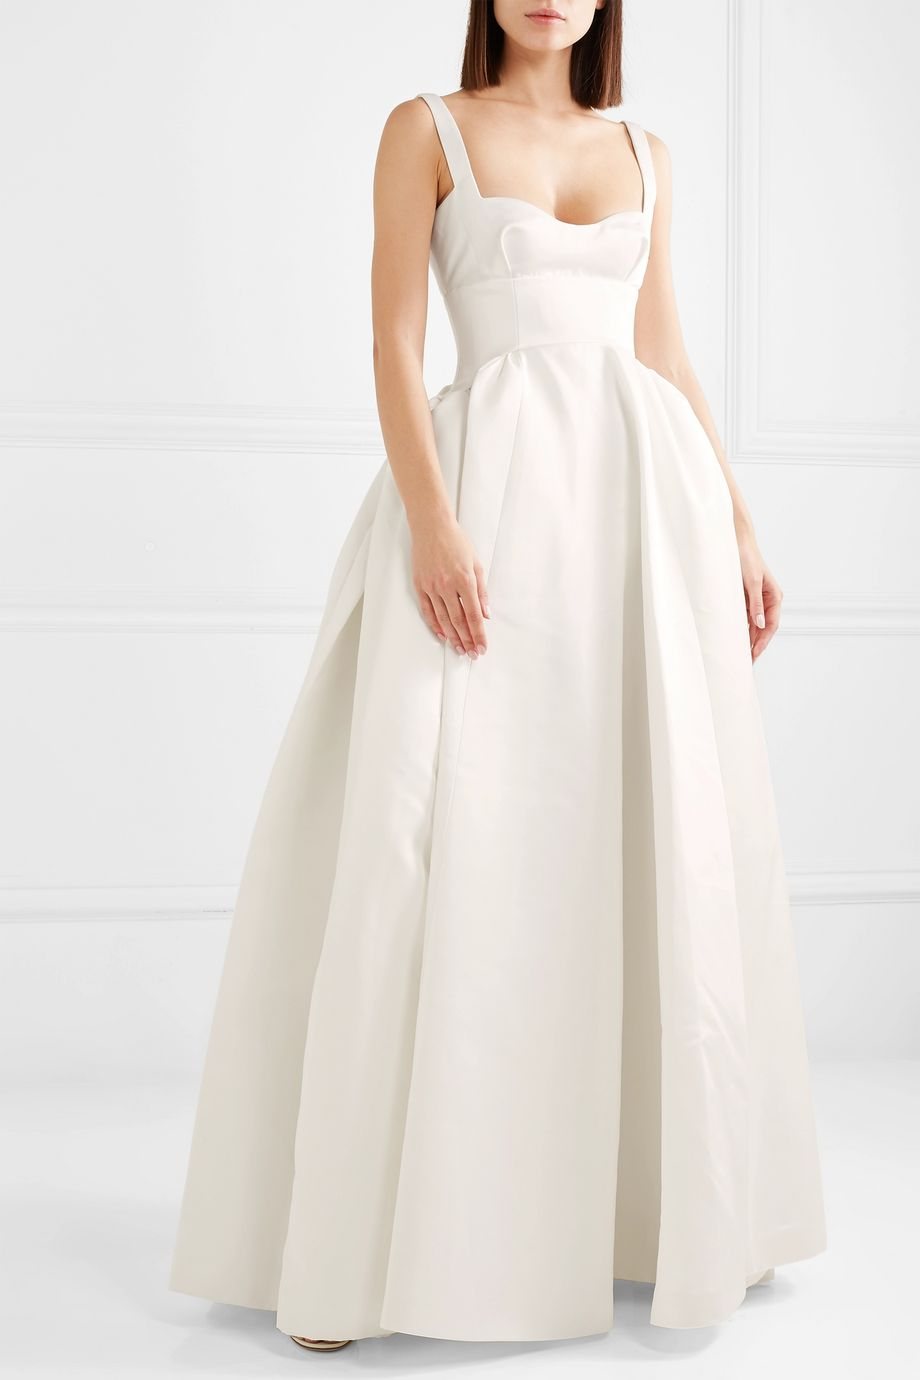 White Diamond duchesse-satin gown | Emilia Wickstead